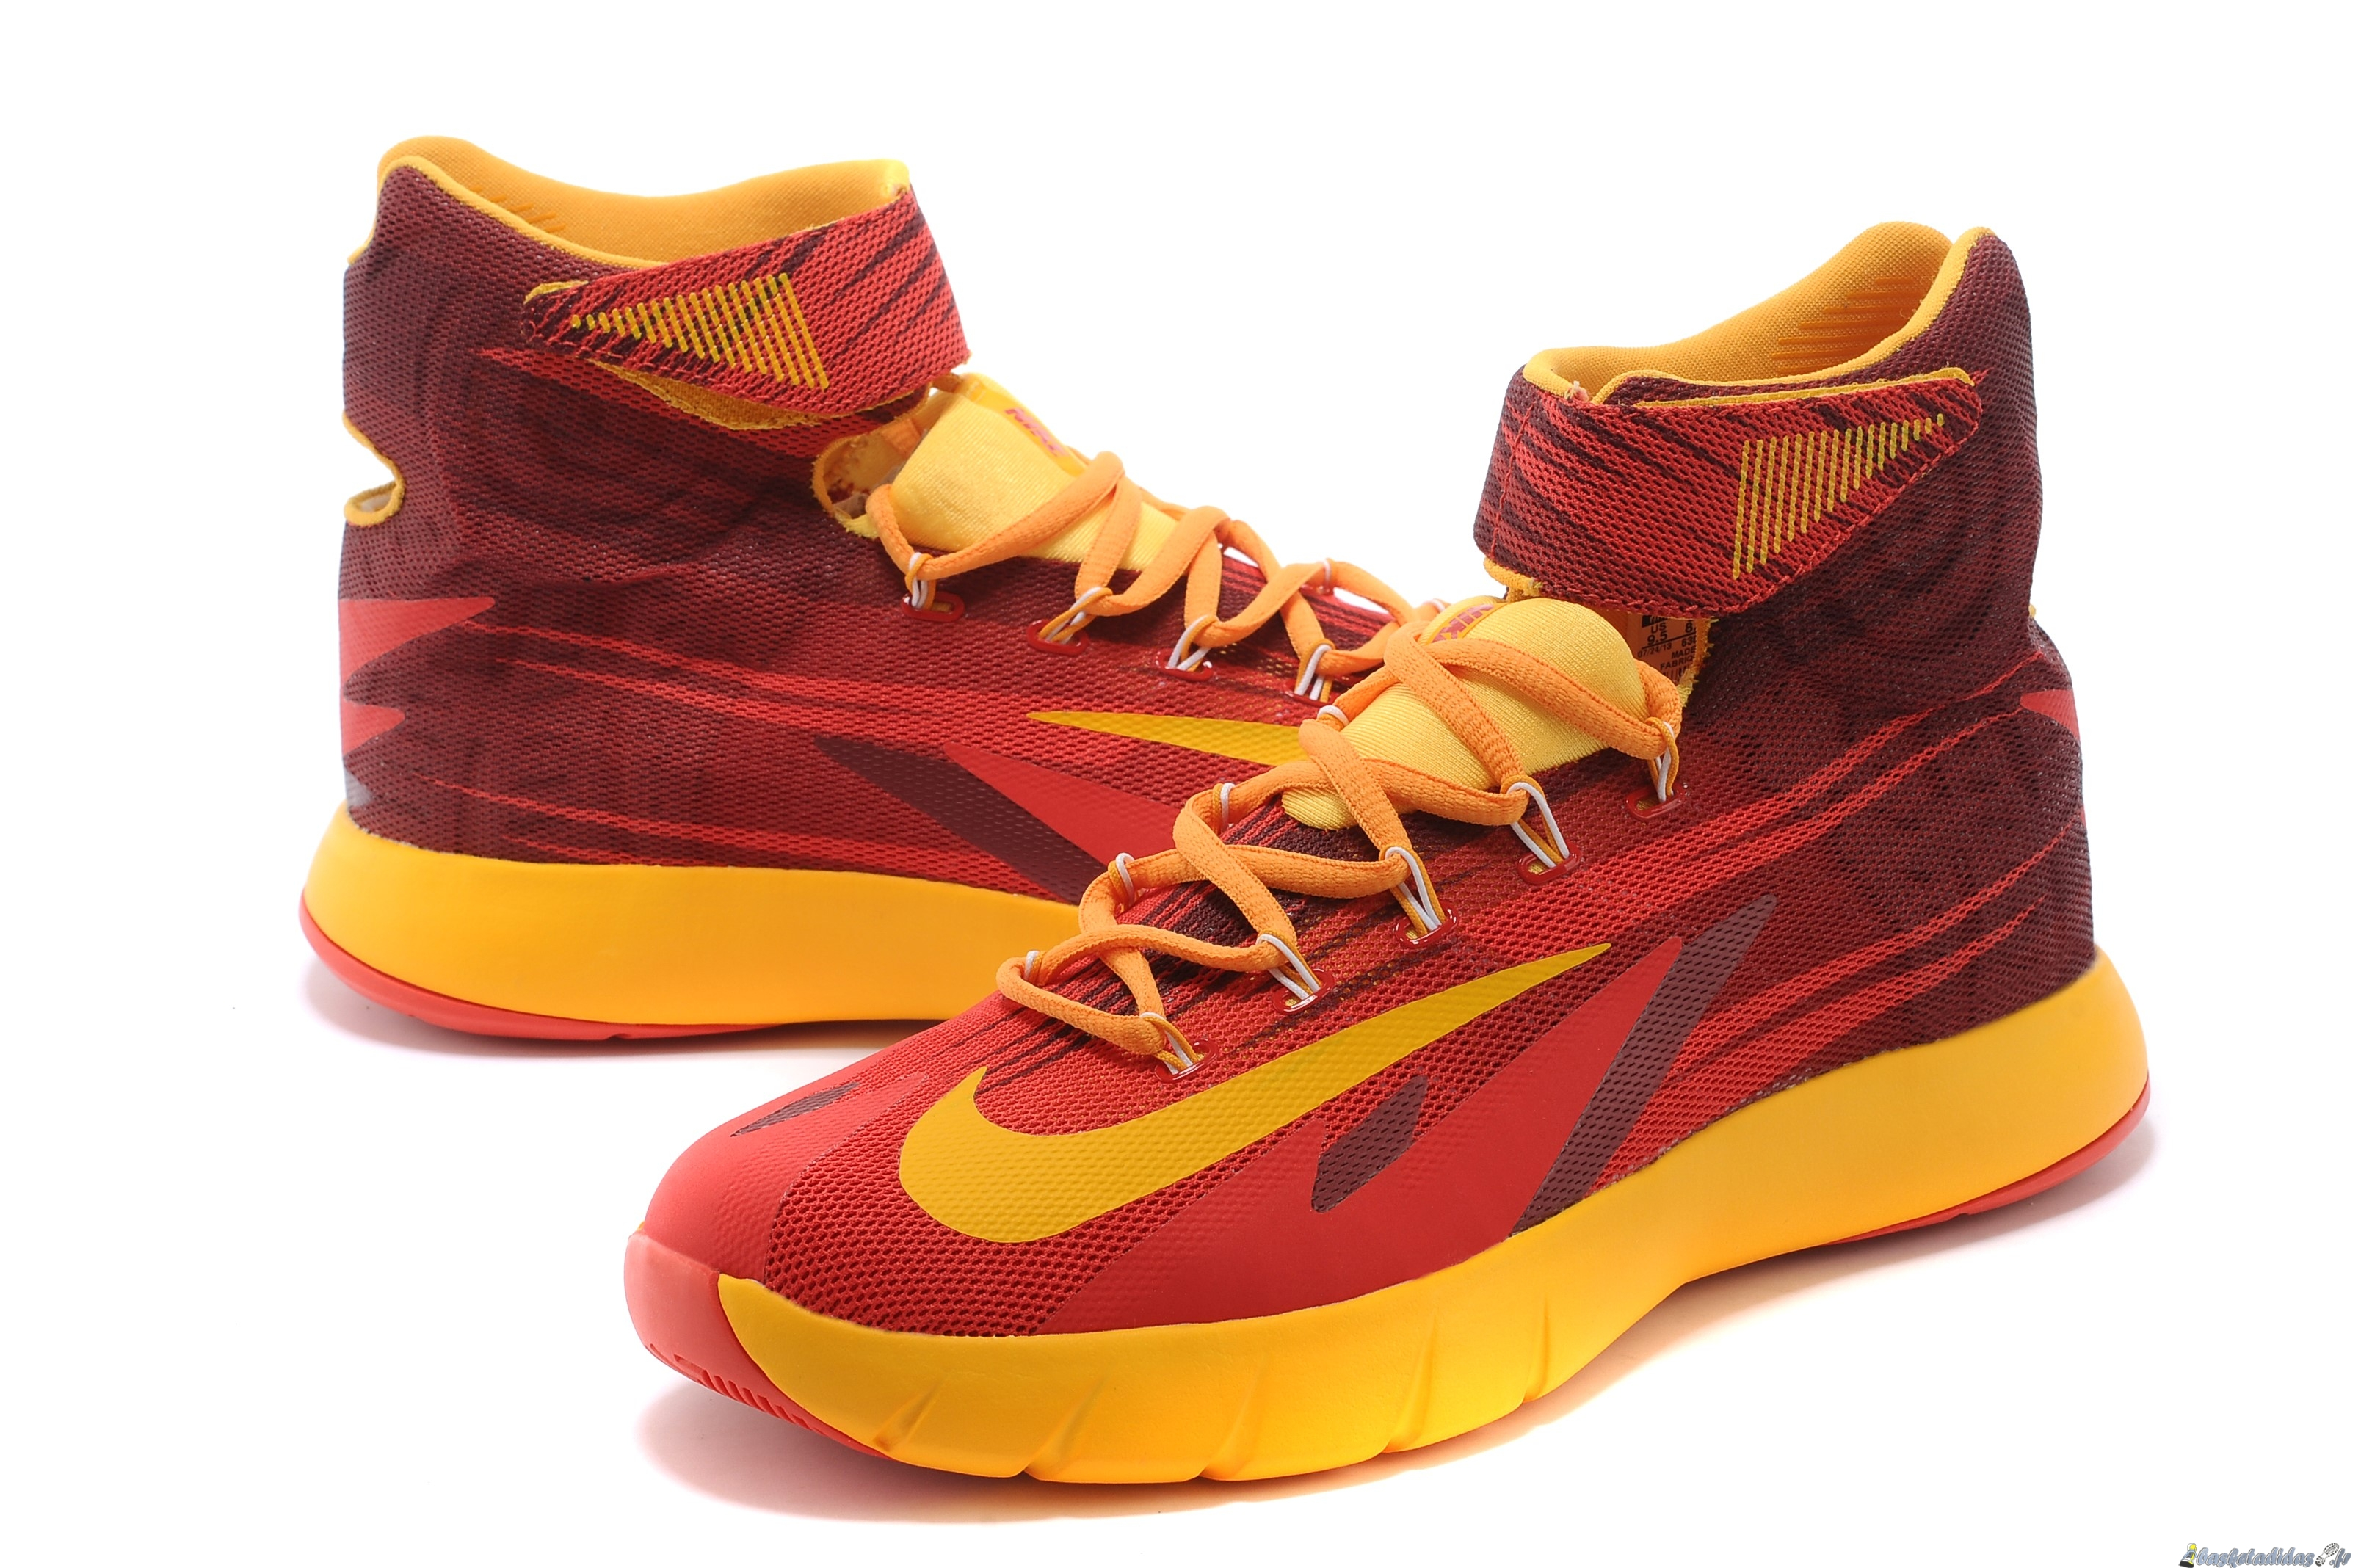 reputable site a4edf a0987 ... Chaussure de Basket Nike Zoom Hyperrev Kyrie Irving Homme Rouge Jaune  ...